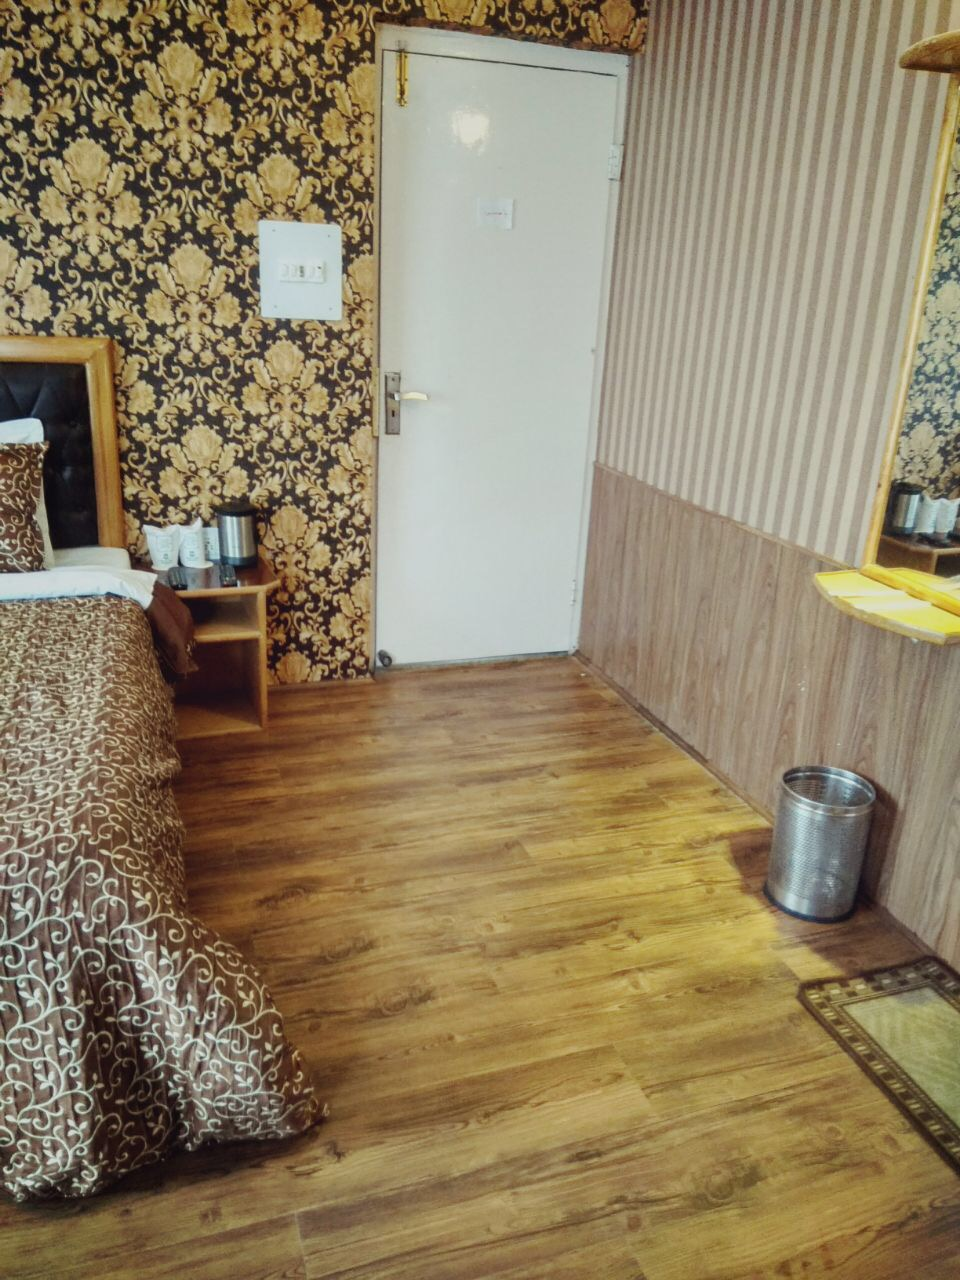 Deluxe Room, FOREST HILL RESORTS - Budget Hotels in Pahalgam